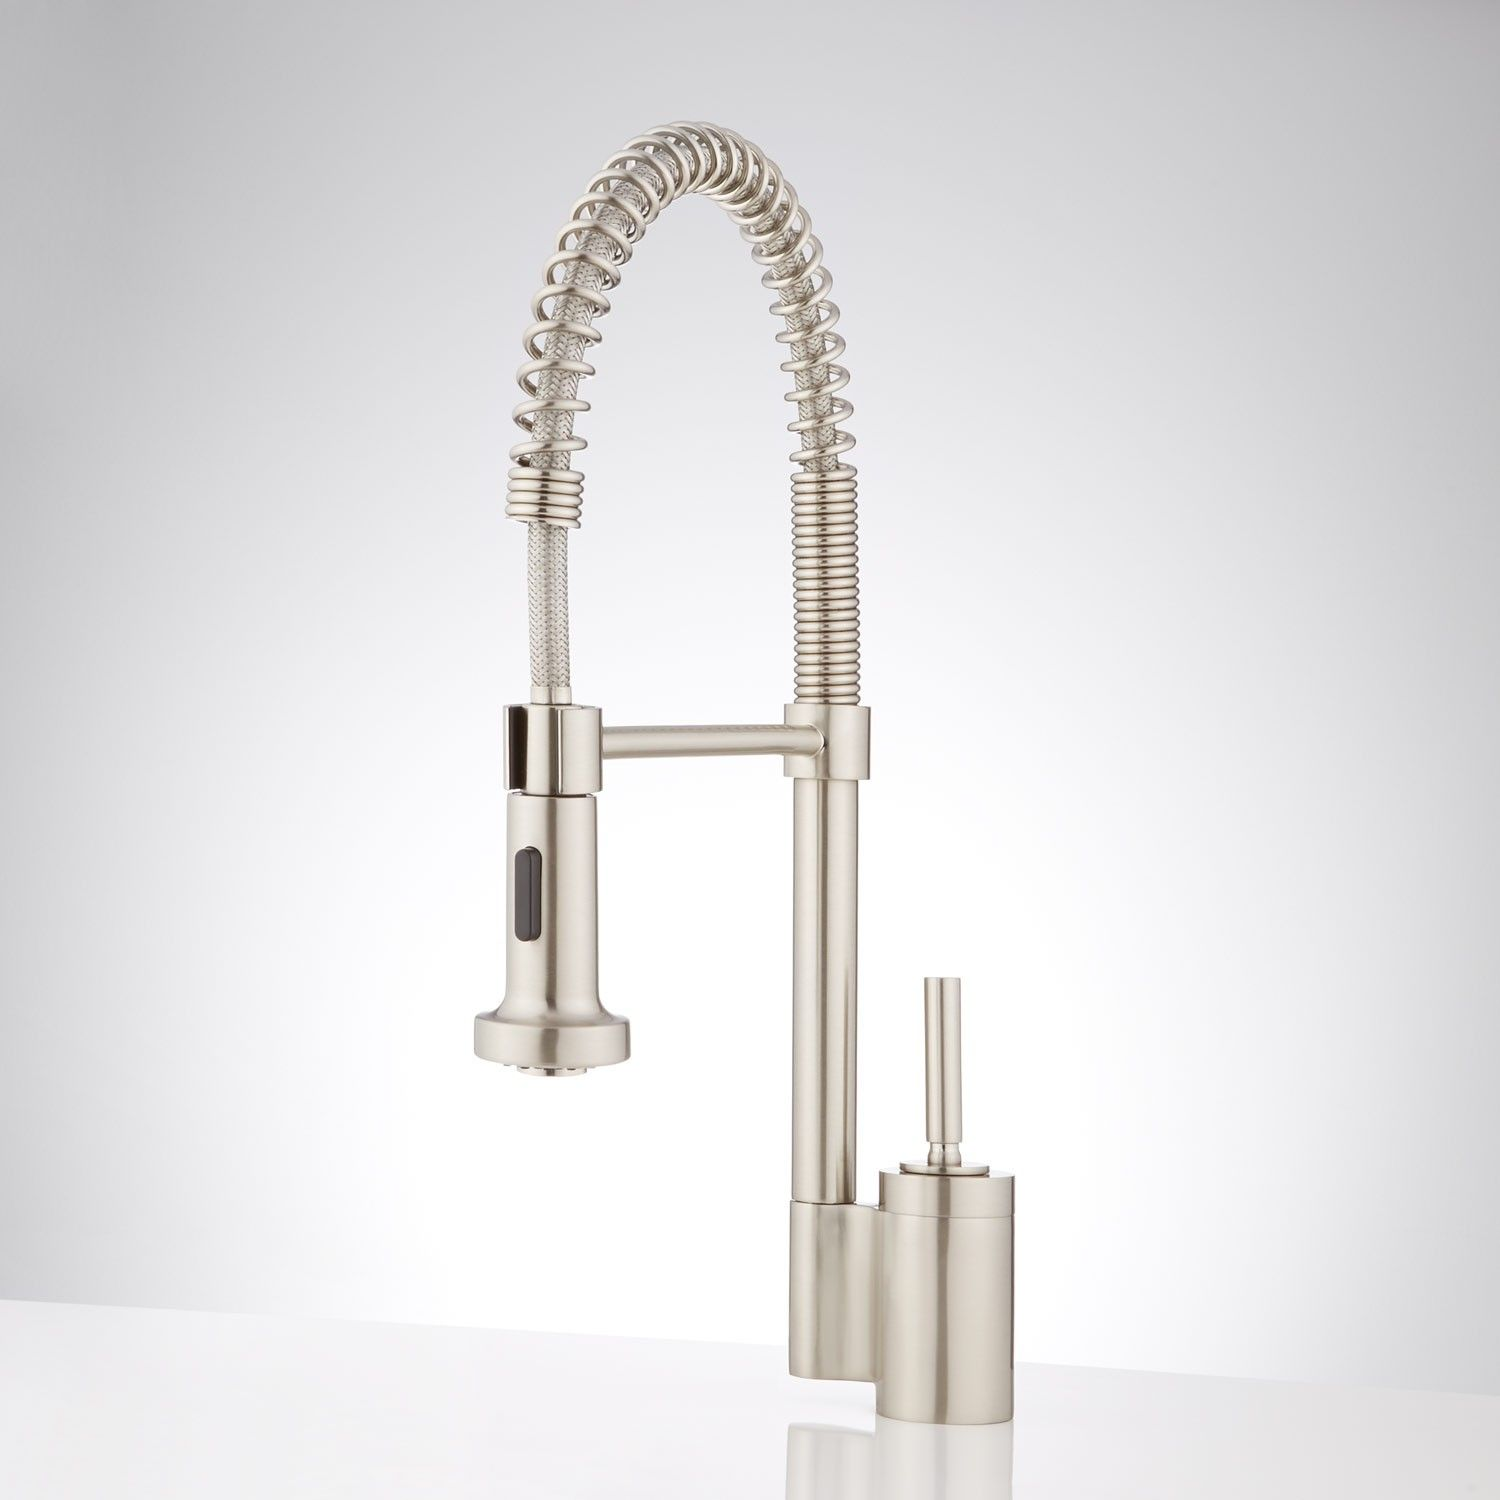 Trevino single hole kitchen faucet with pull down spring spout